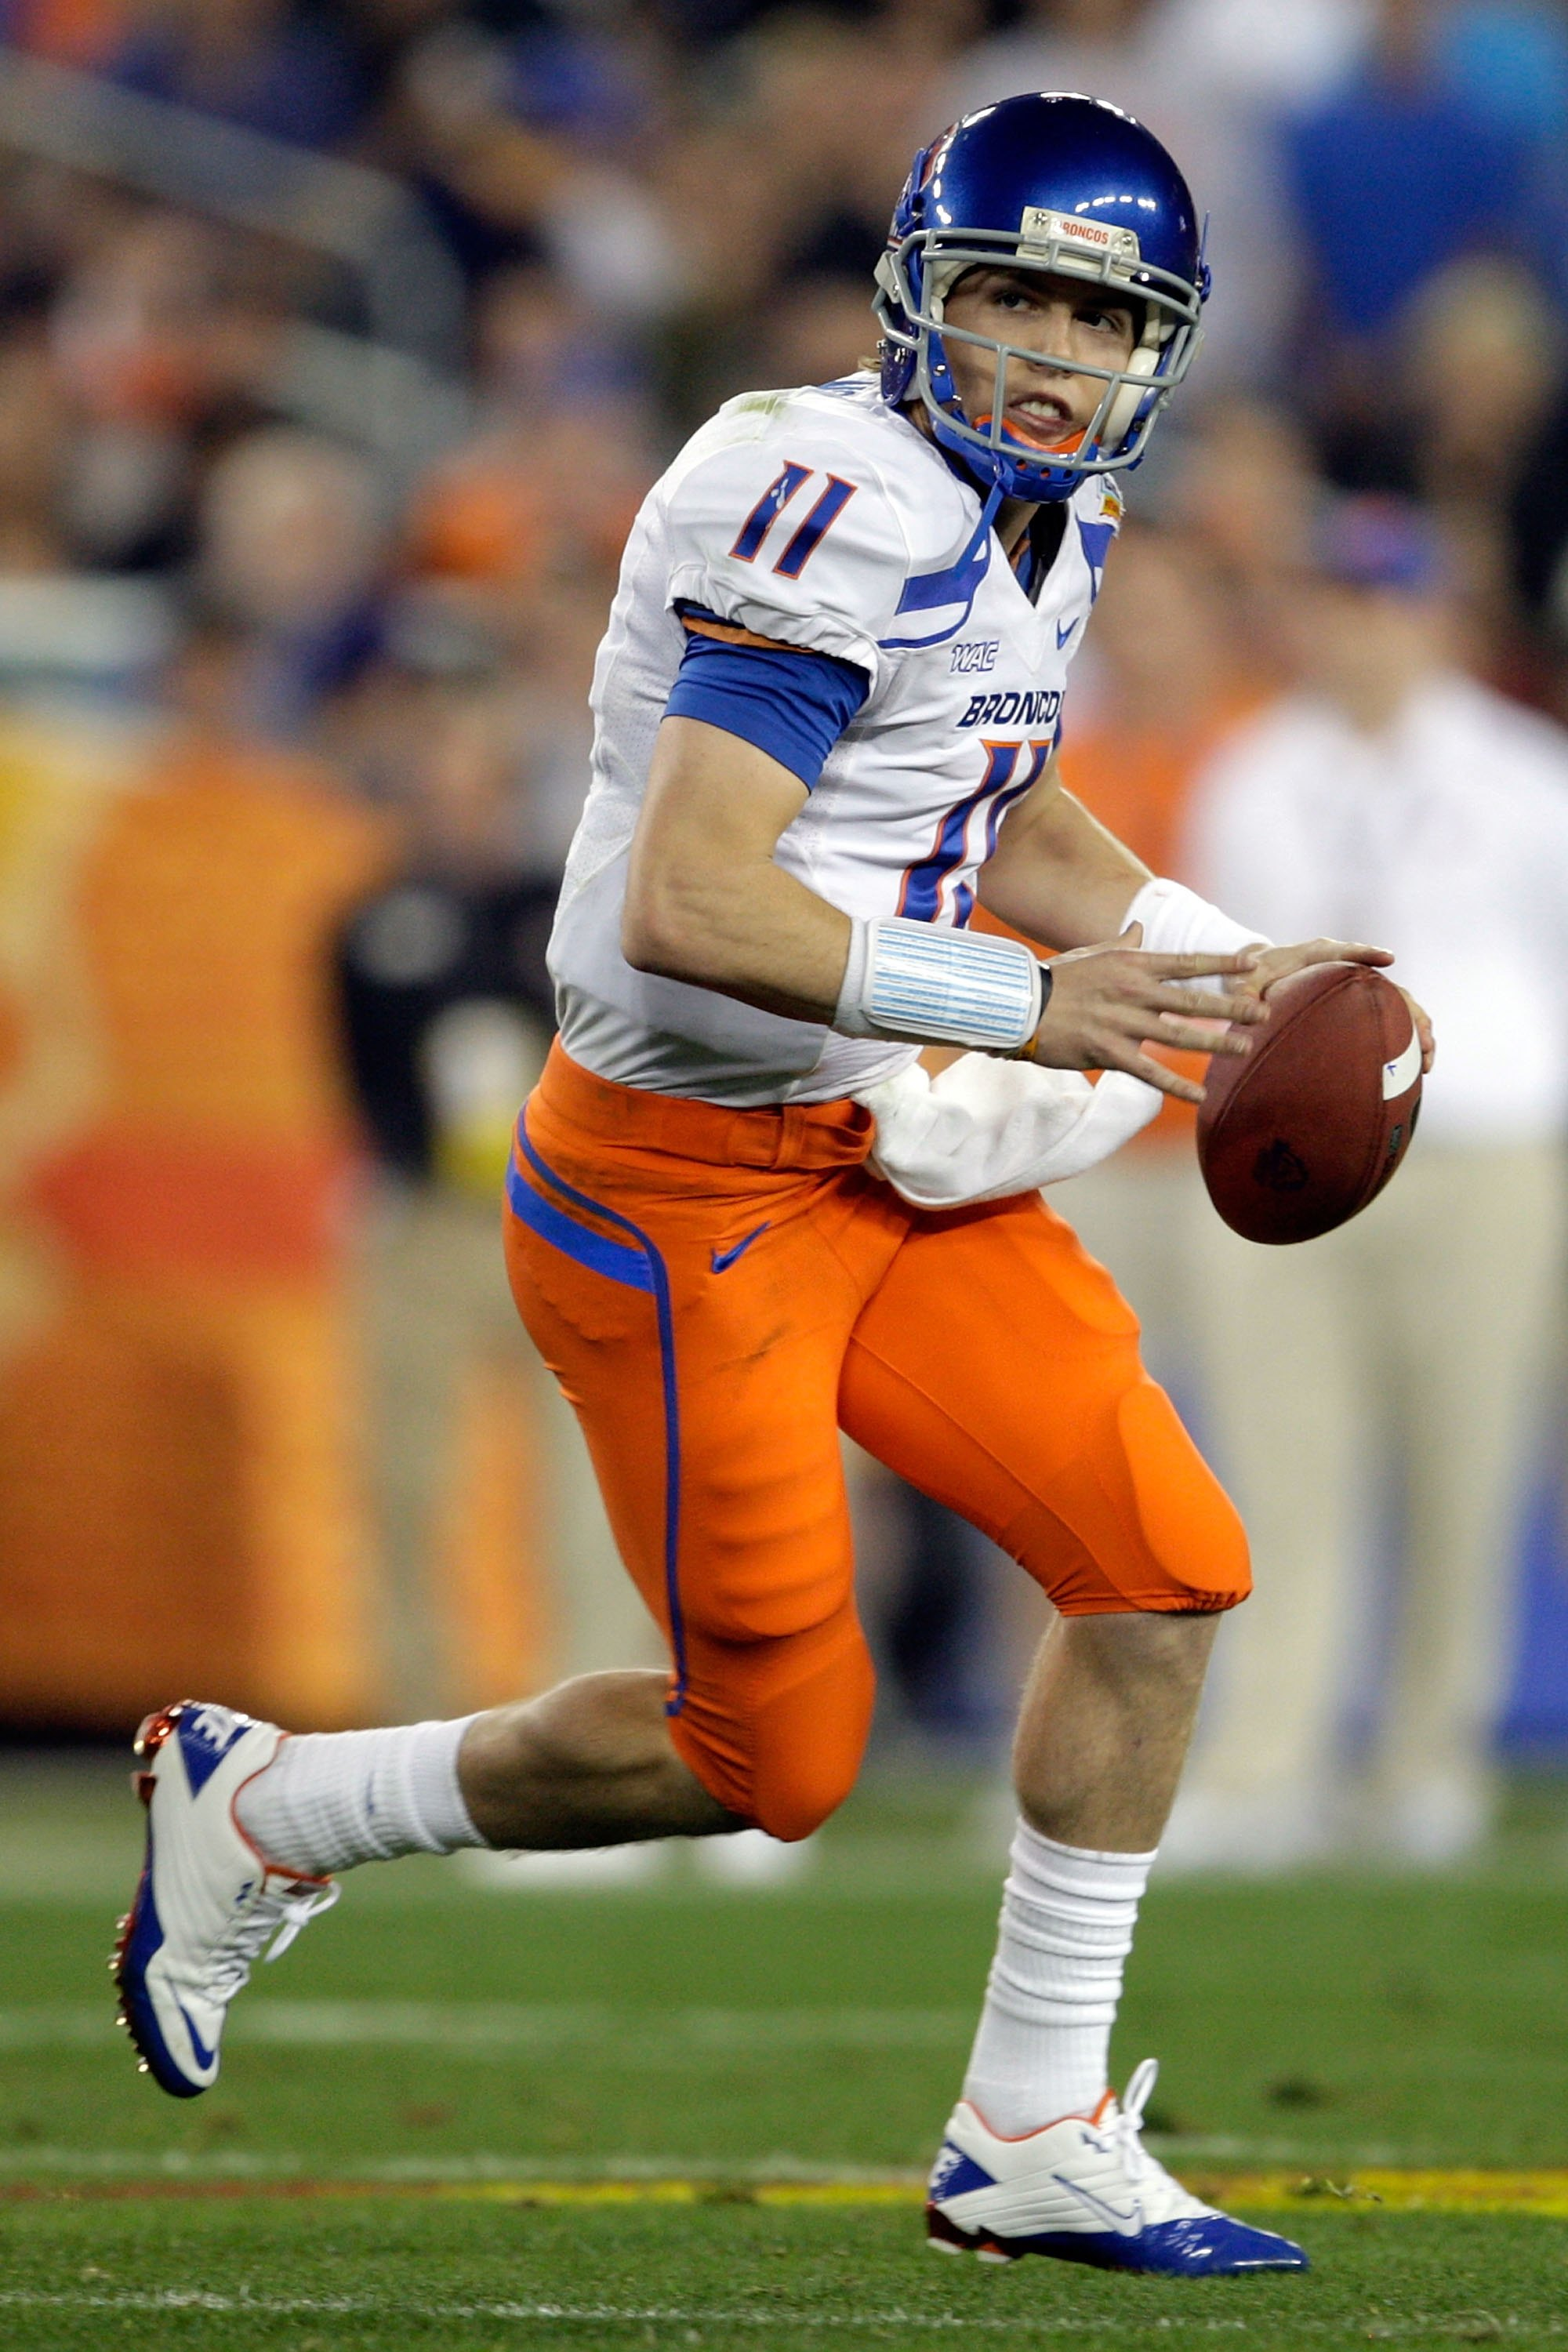 GLENDALE, AZ - JANUARY 04:  Quarterback Kellen Moore #11 of the Boise State Broncos passes the ball against the TCU Horned Frogs during the Tostitos Fiesta Bowl at the Universtity of Phoenix Stadium on January 4, 2010 in Glendale, Arizona.  (Photo by Jami